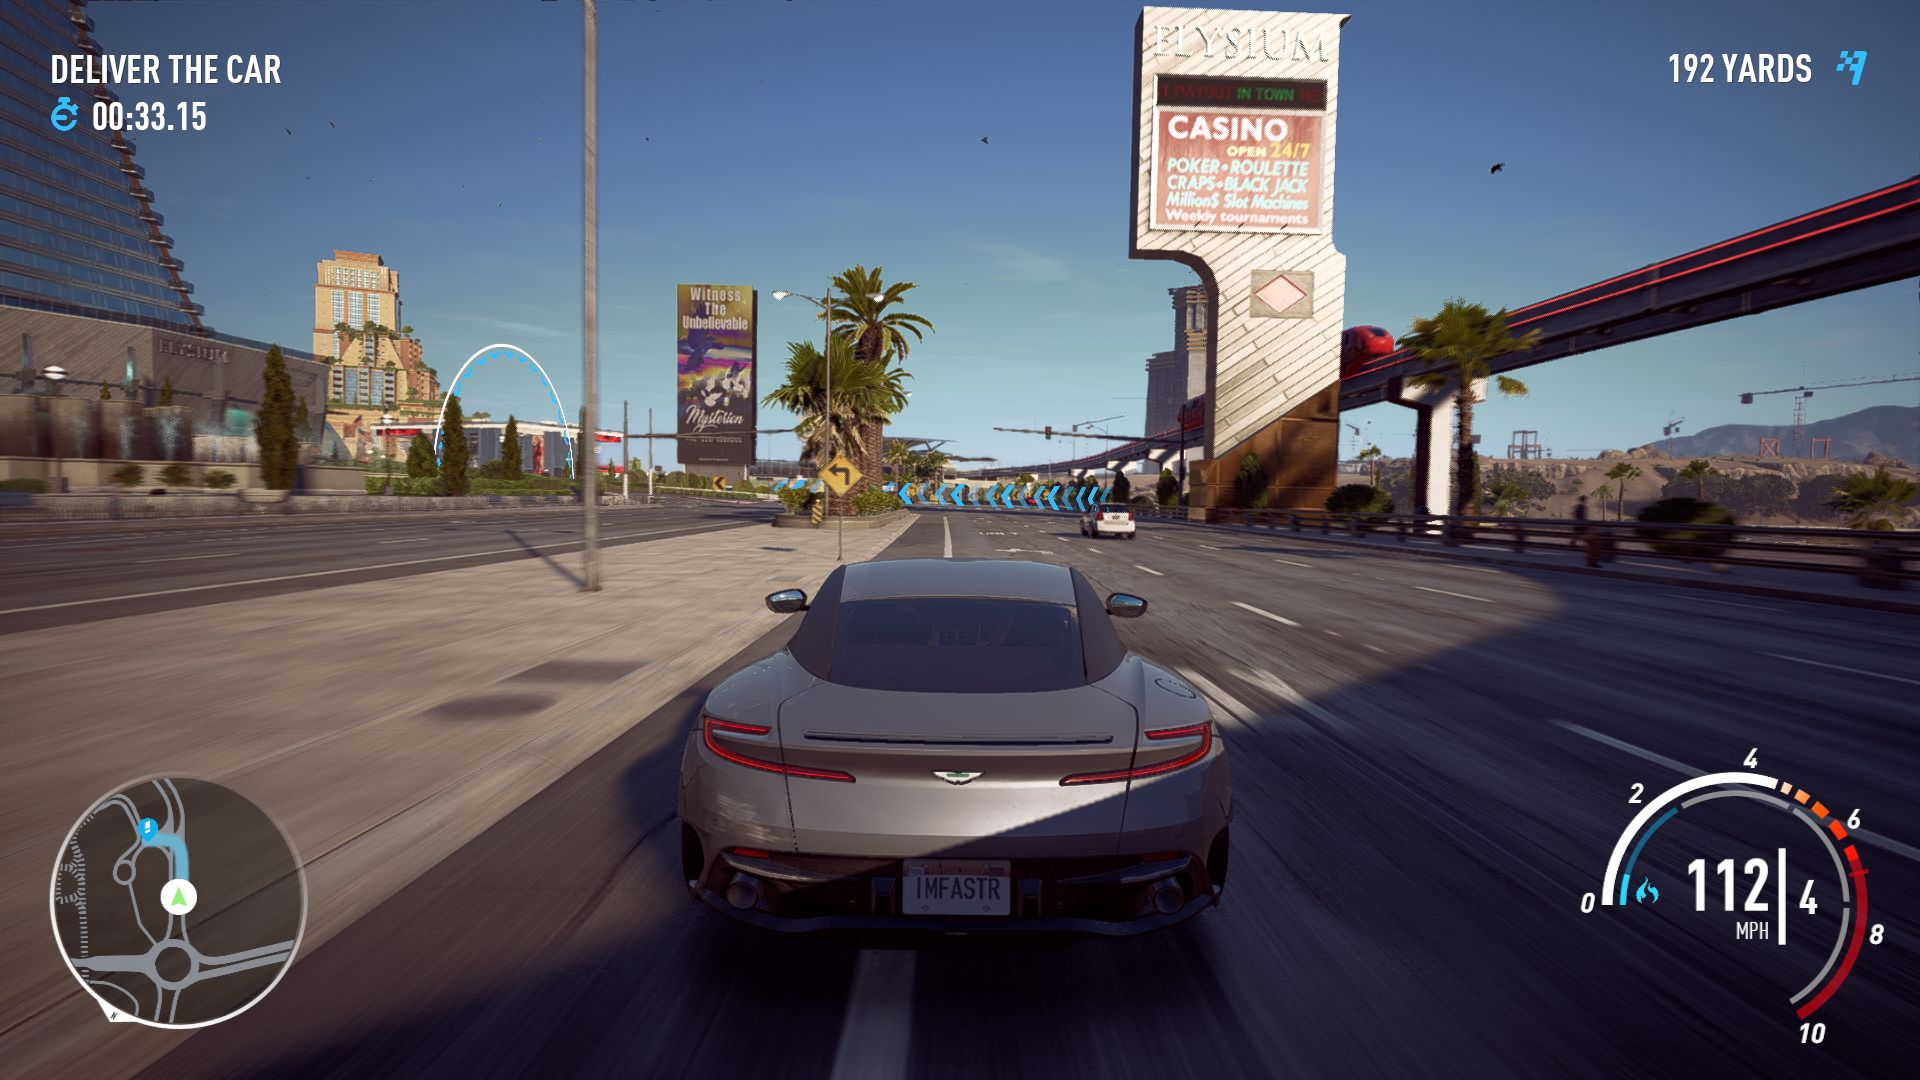 Car Driving Games >> Need for Speed Payback Laptop and Desktop Benchmarks - NotebookCheck.net Reviews